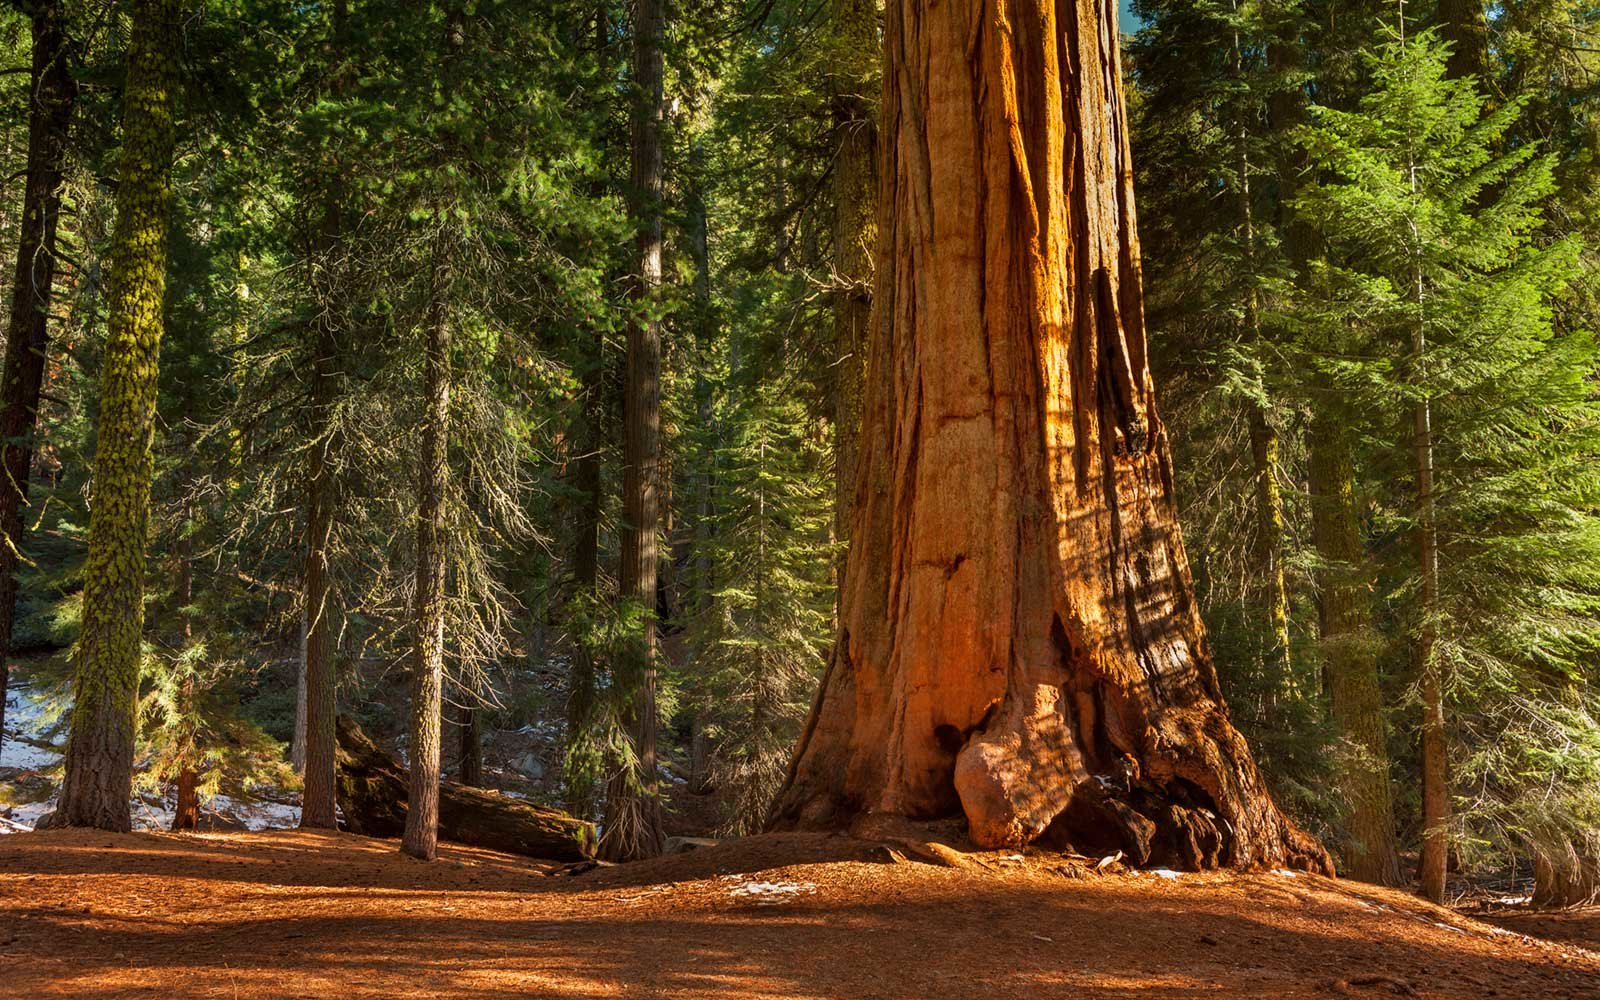 Sequoias, Kings Canyon National Park, California